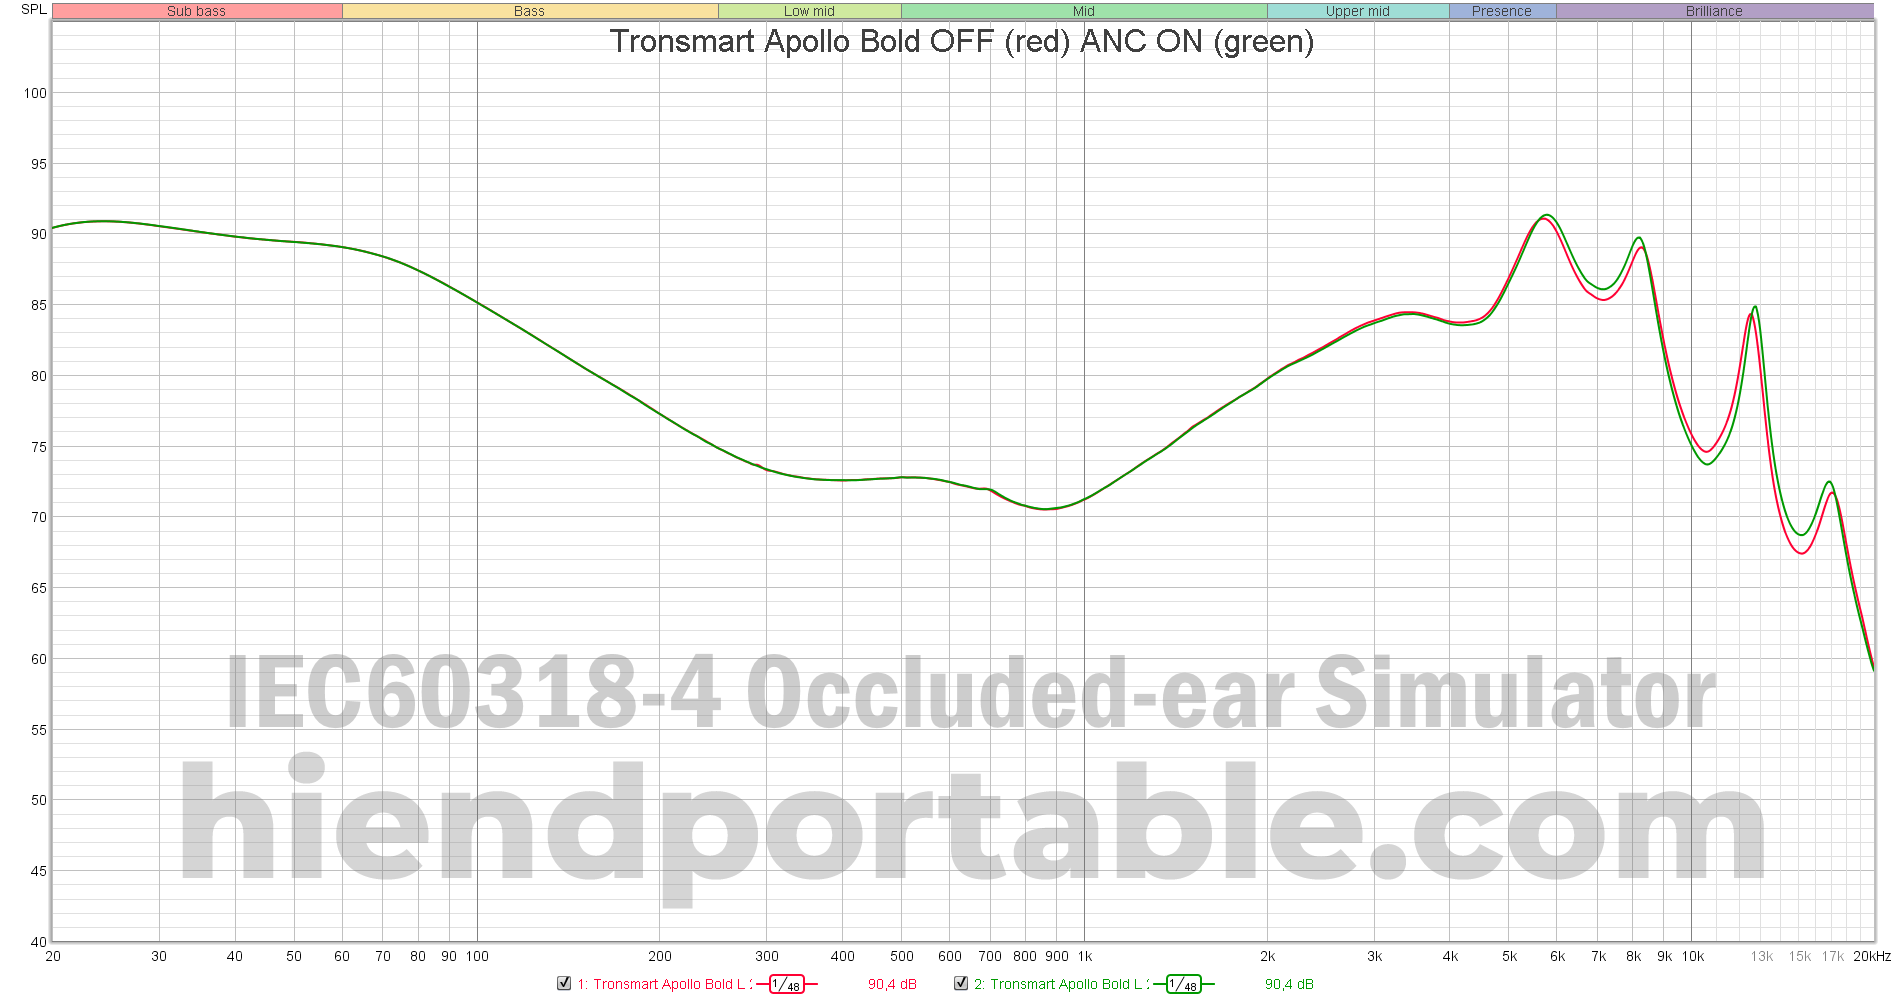 Tronsmart-Apollo-Bold-OFF-vs-ANC-ON.png